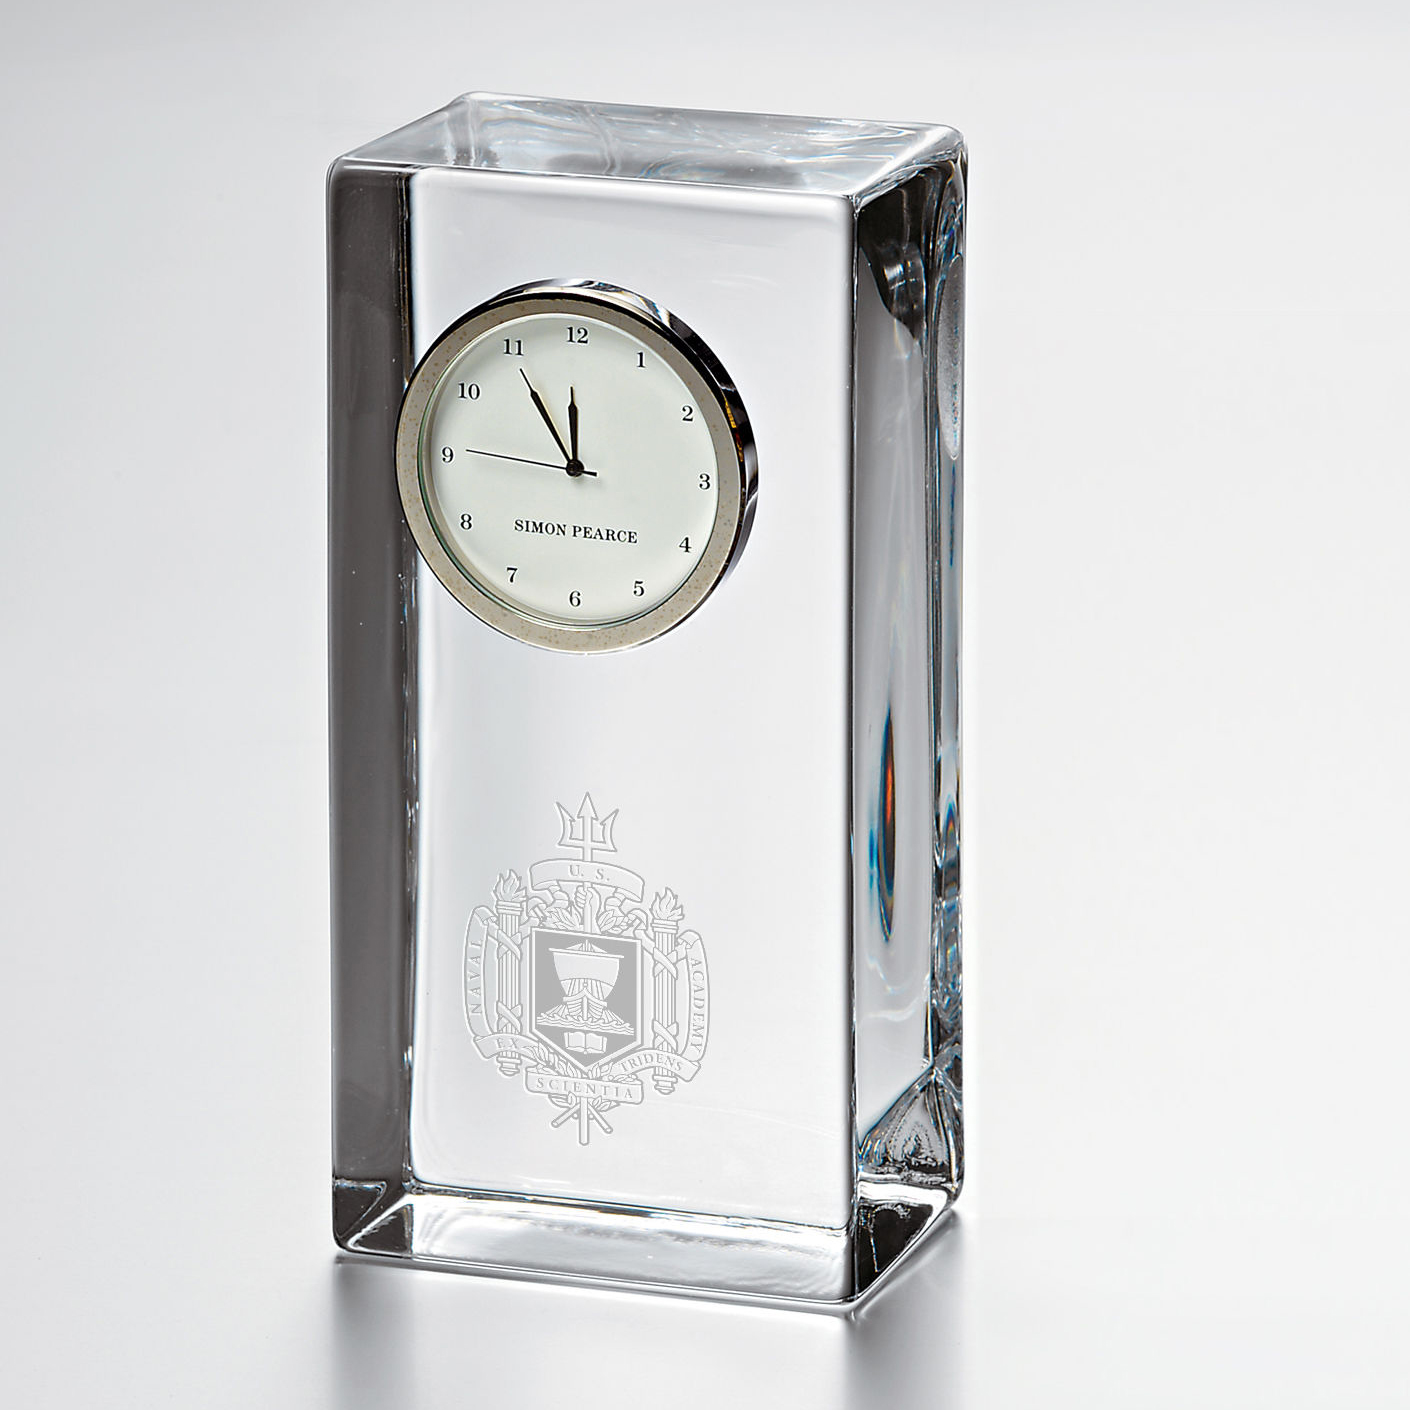 USNA Tall Glass Desk Clock by Simon Pearce